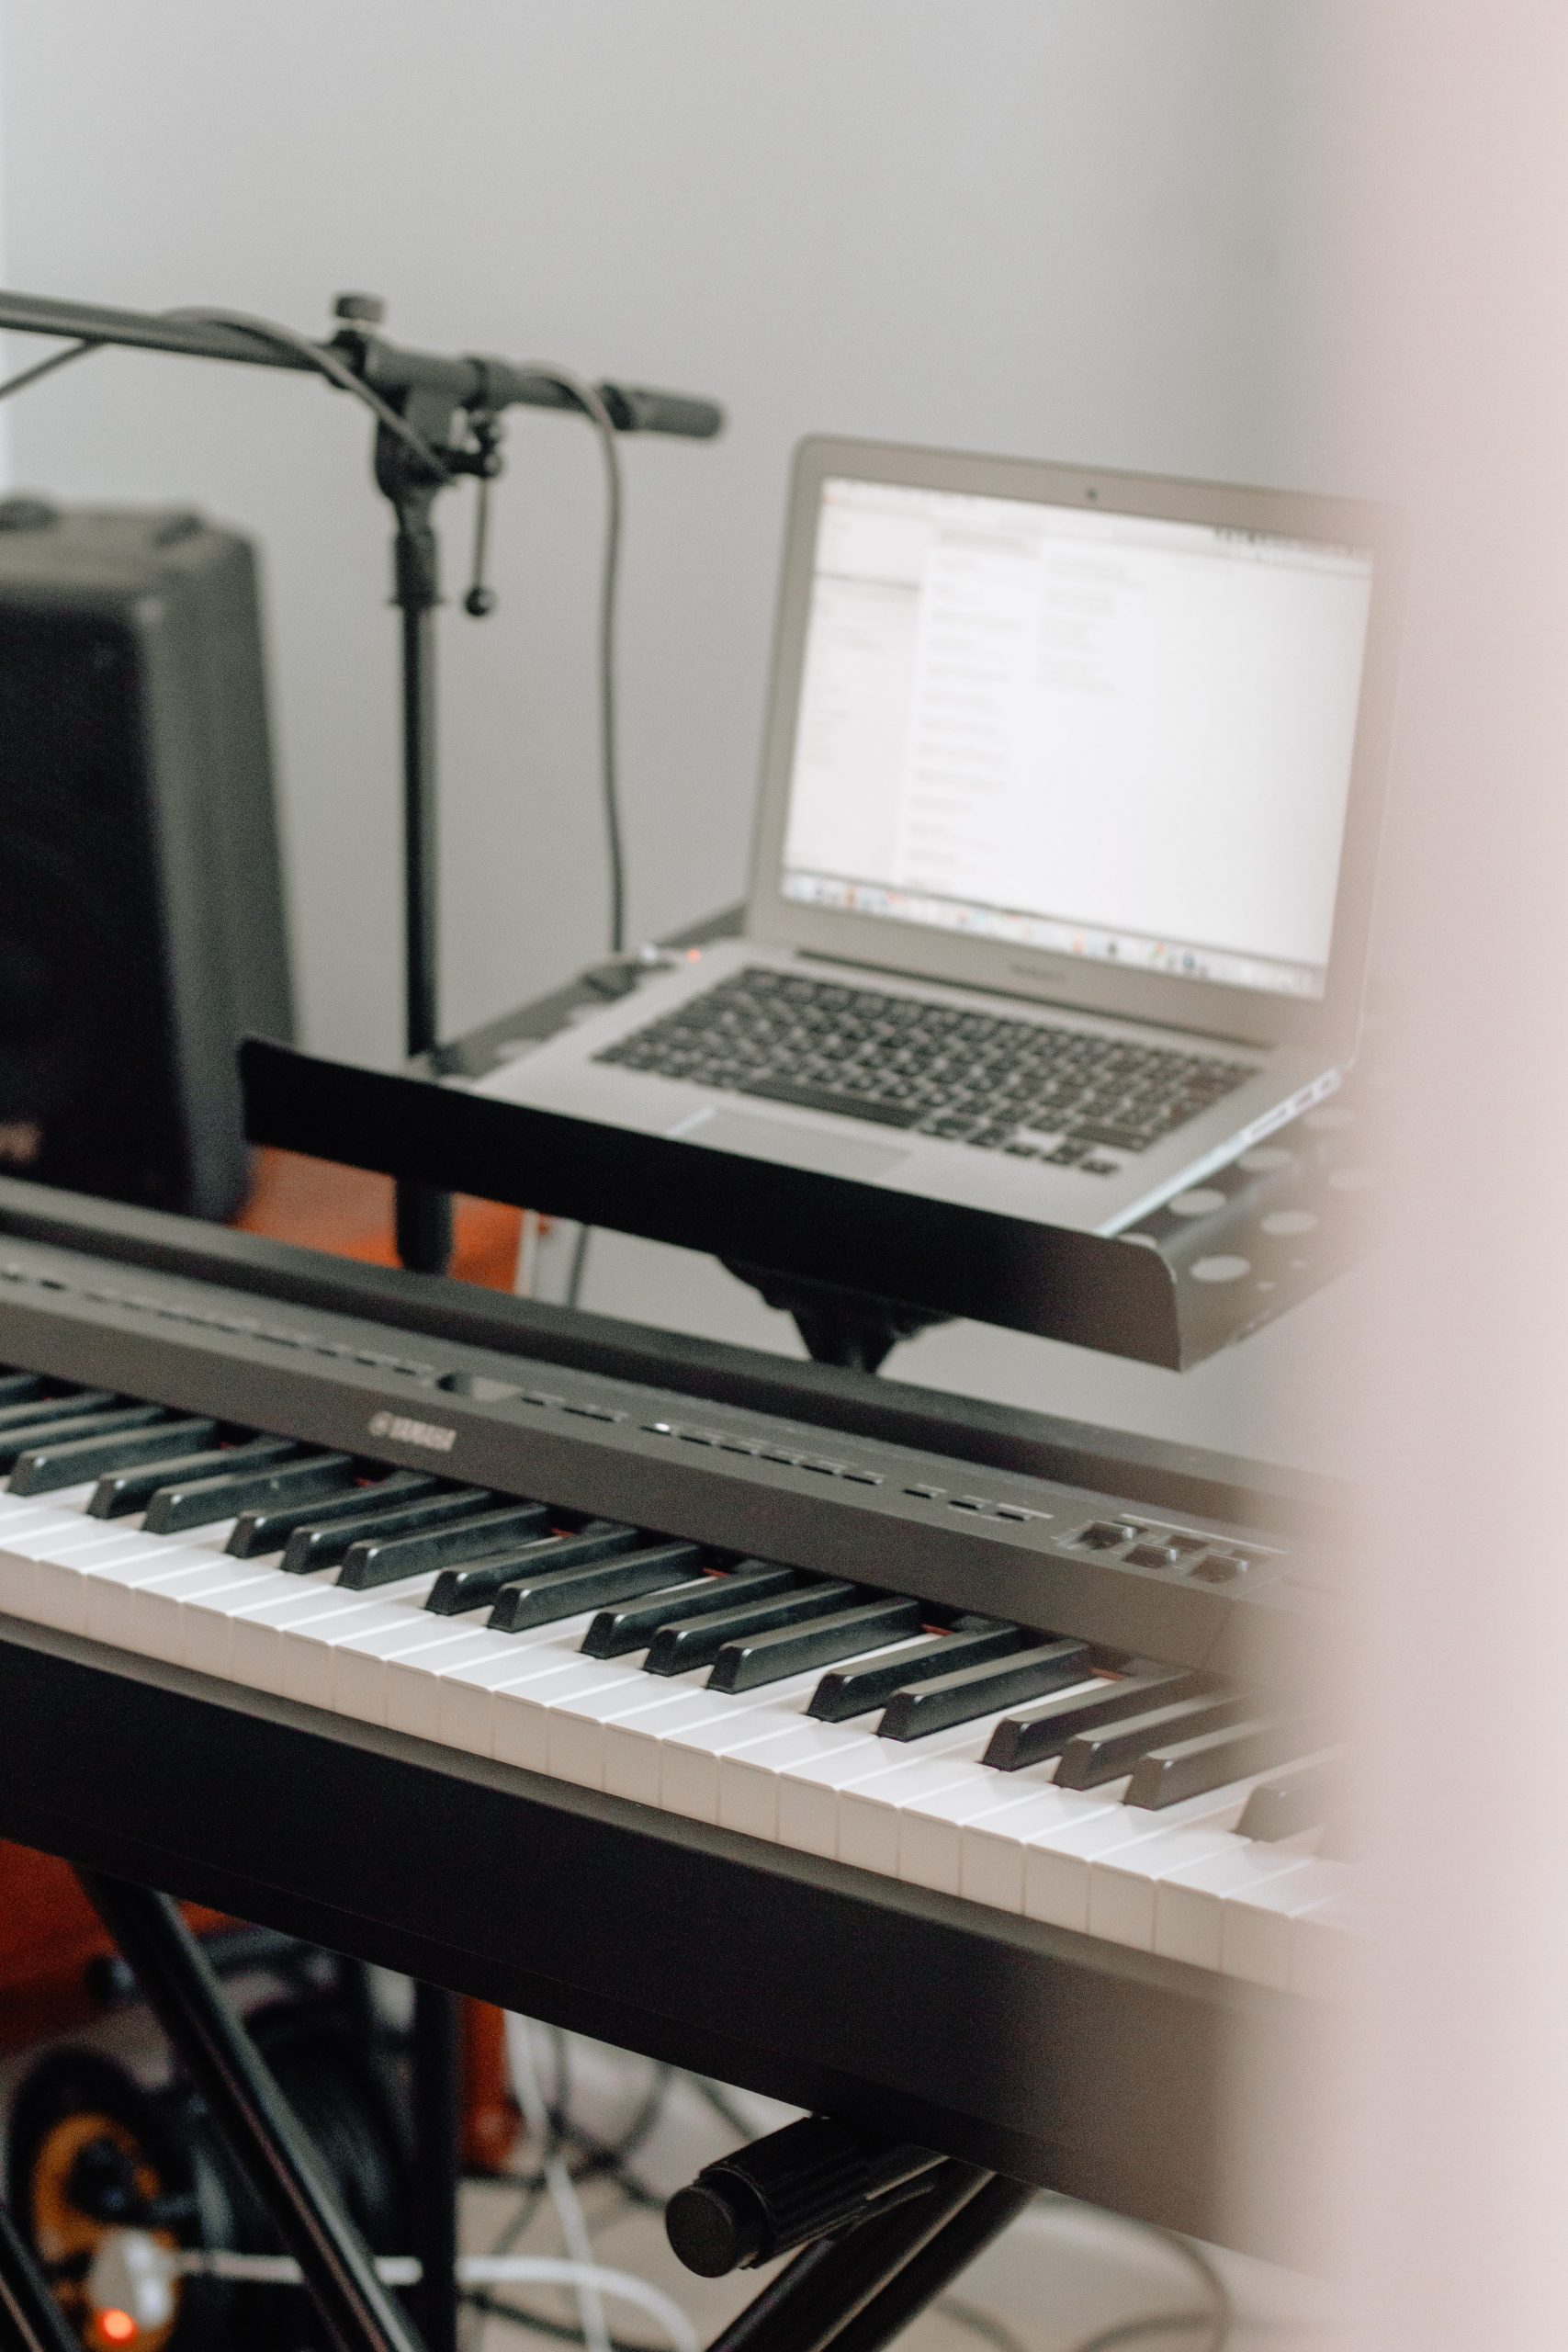 Online piano lesson with keyboard and laptop in Manchester